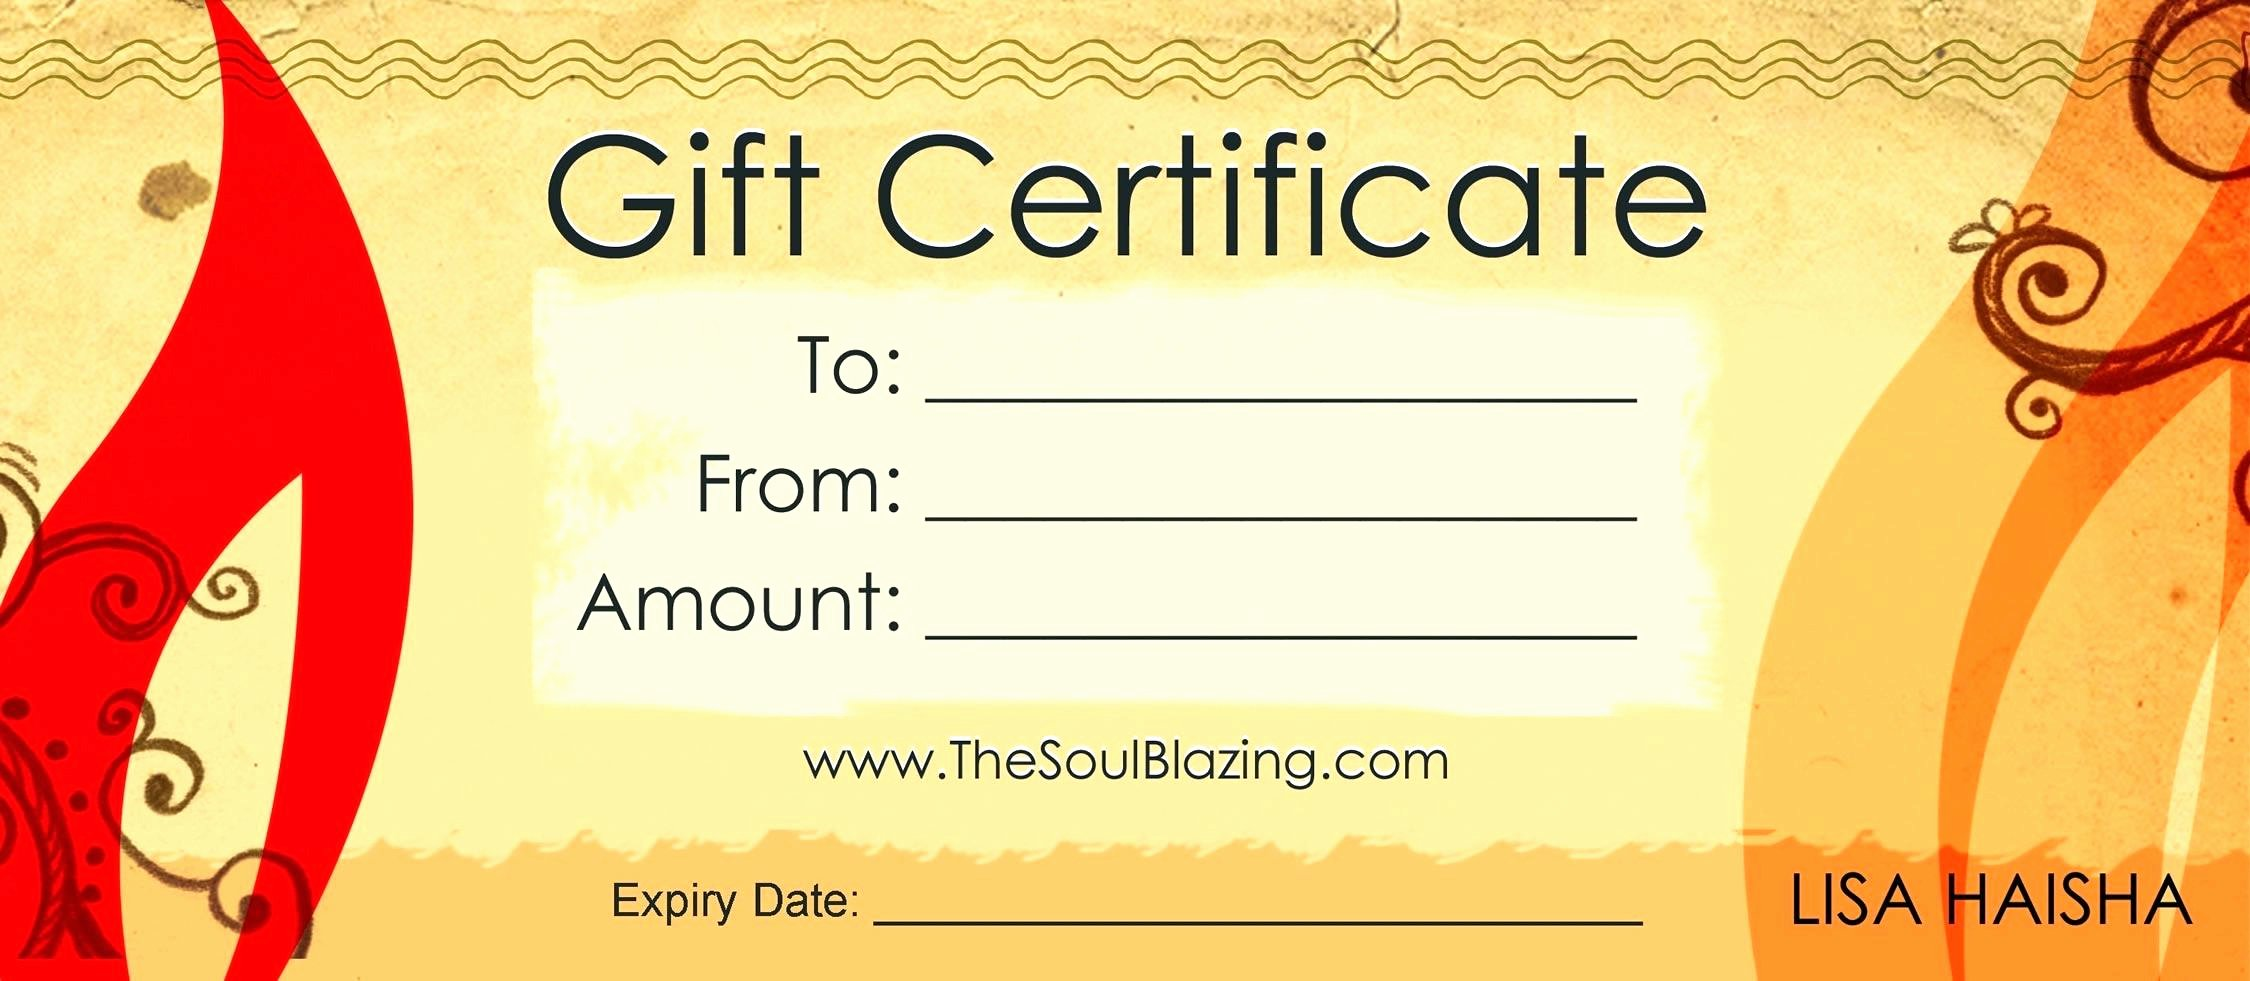 Printable Massage Gift Certificates Best Of Free Printable Massage Gift Certificates